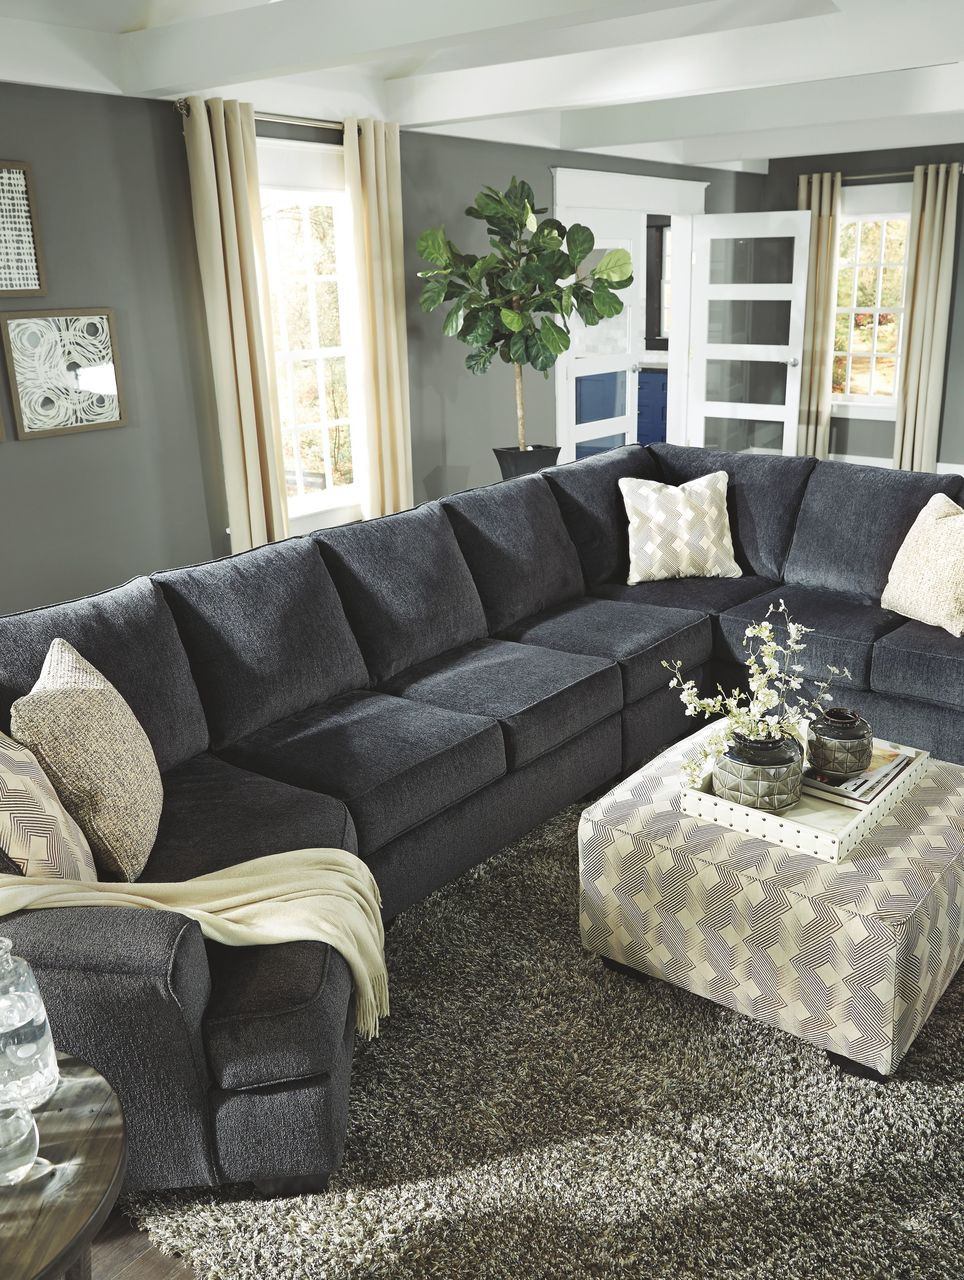 Ashley Eltmann Slate Laf Cuddler Armless Loveseat Armless Chair Raf Sofa Couch With Corner Wedge Sectional Accent Ottoman On Sale At Mike S Furniture Serving Joliet Il Chicagoland And Will County